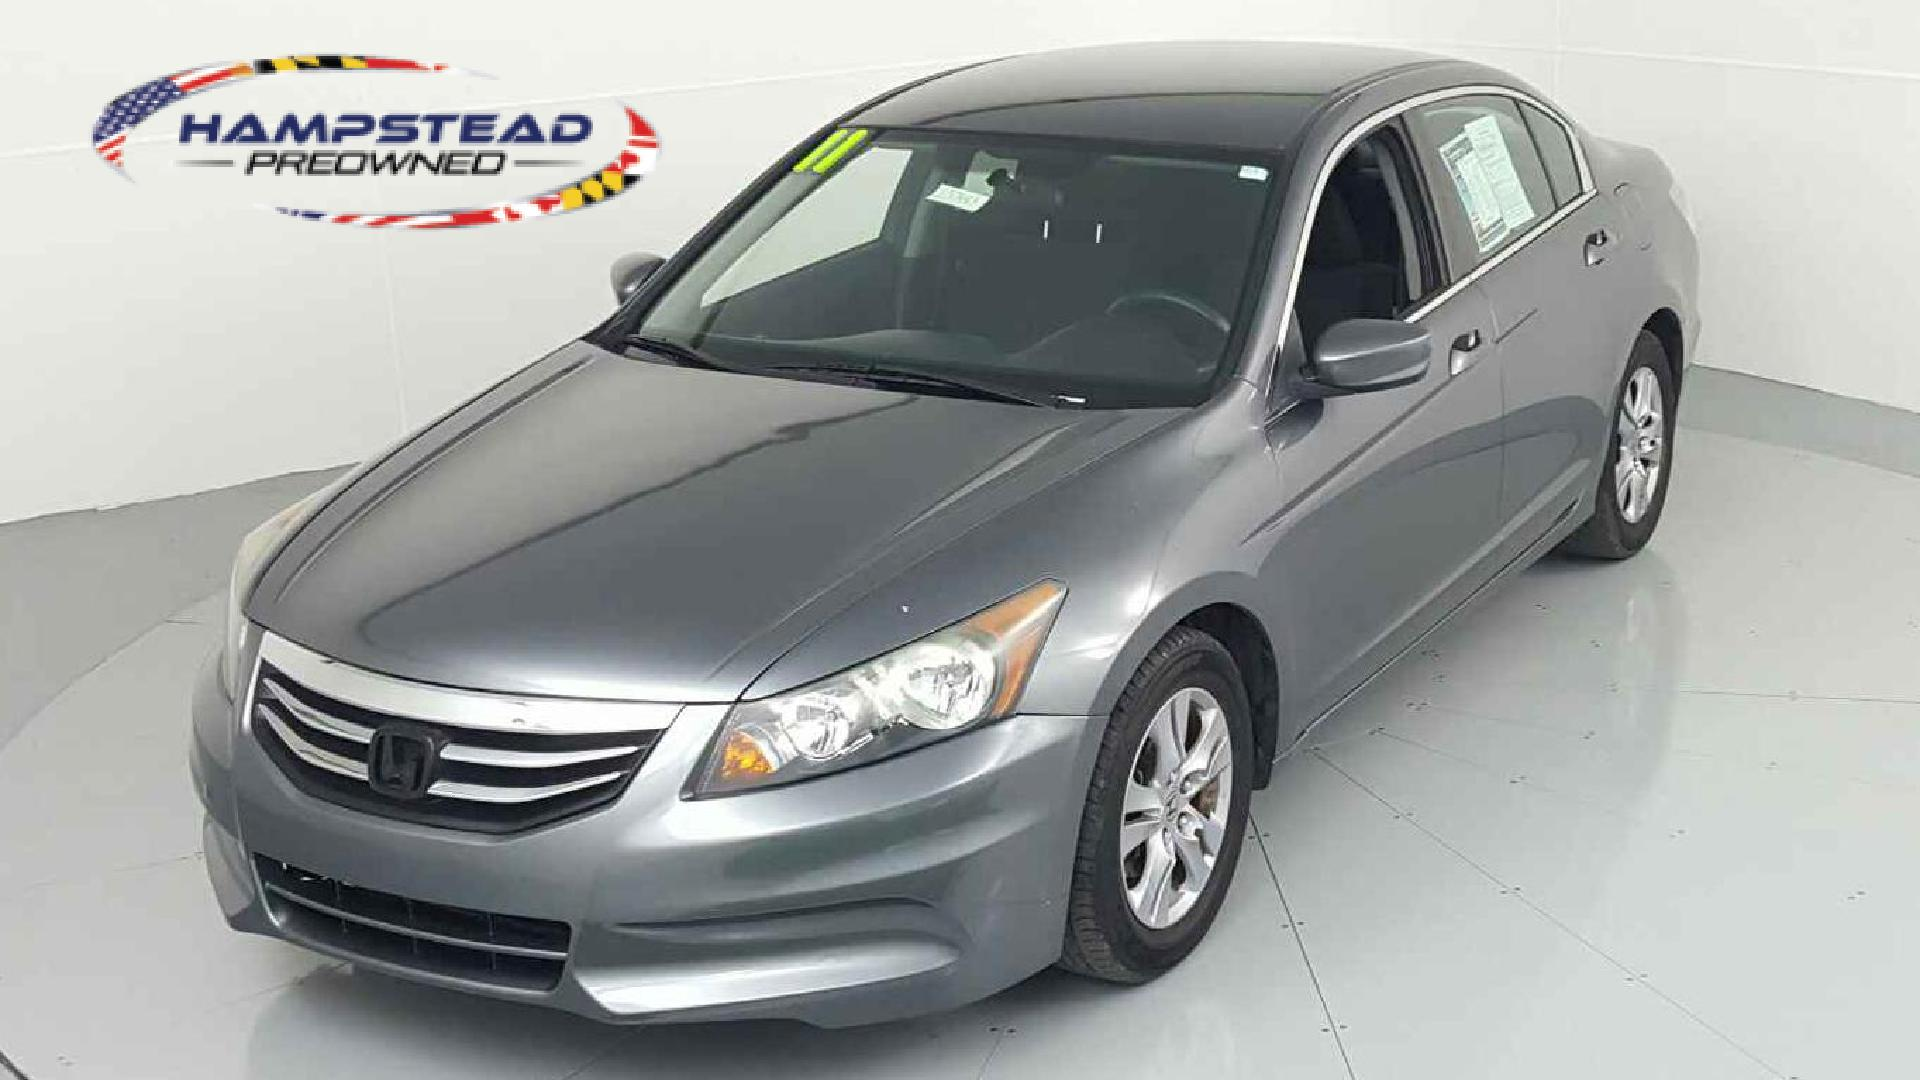 Pre-Owned 2011 Honda Accord LX-P 4-door Mid-Size Passenger